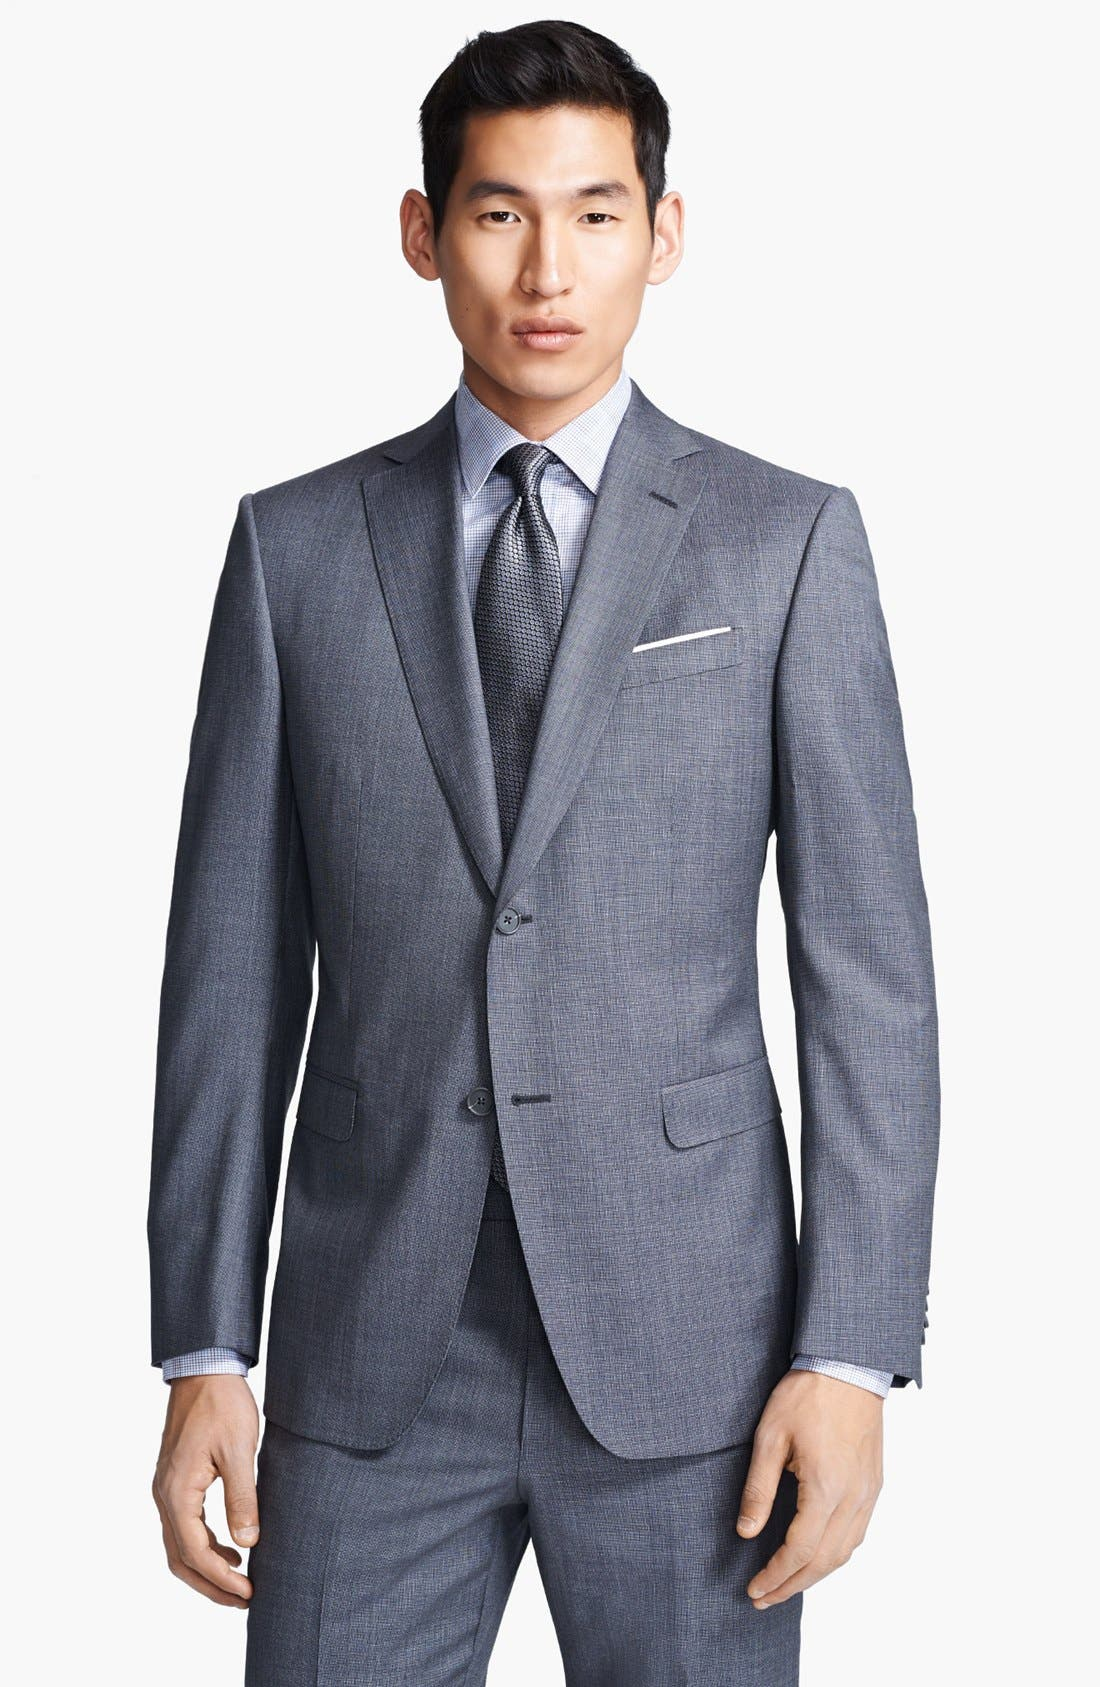 Alternate Image 3  - Z Zegna Trim Fit Grey Textured Wool Suit